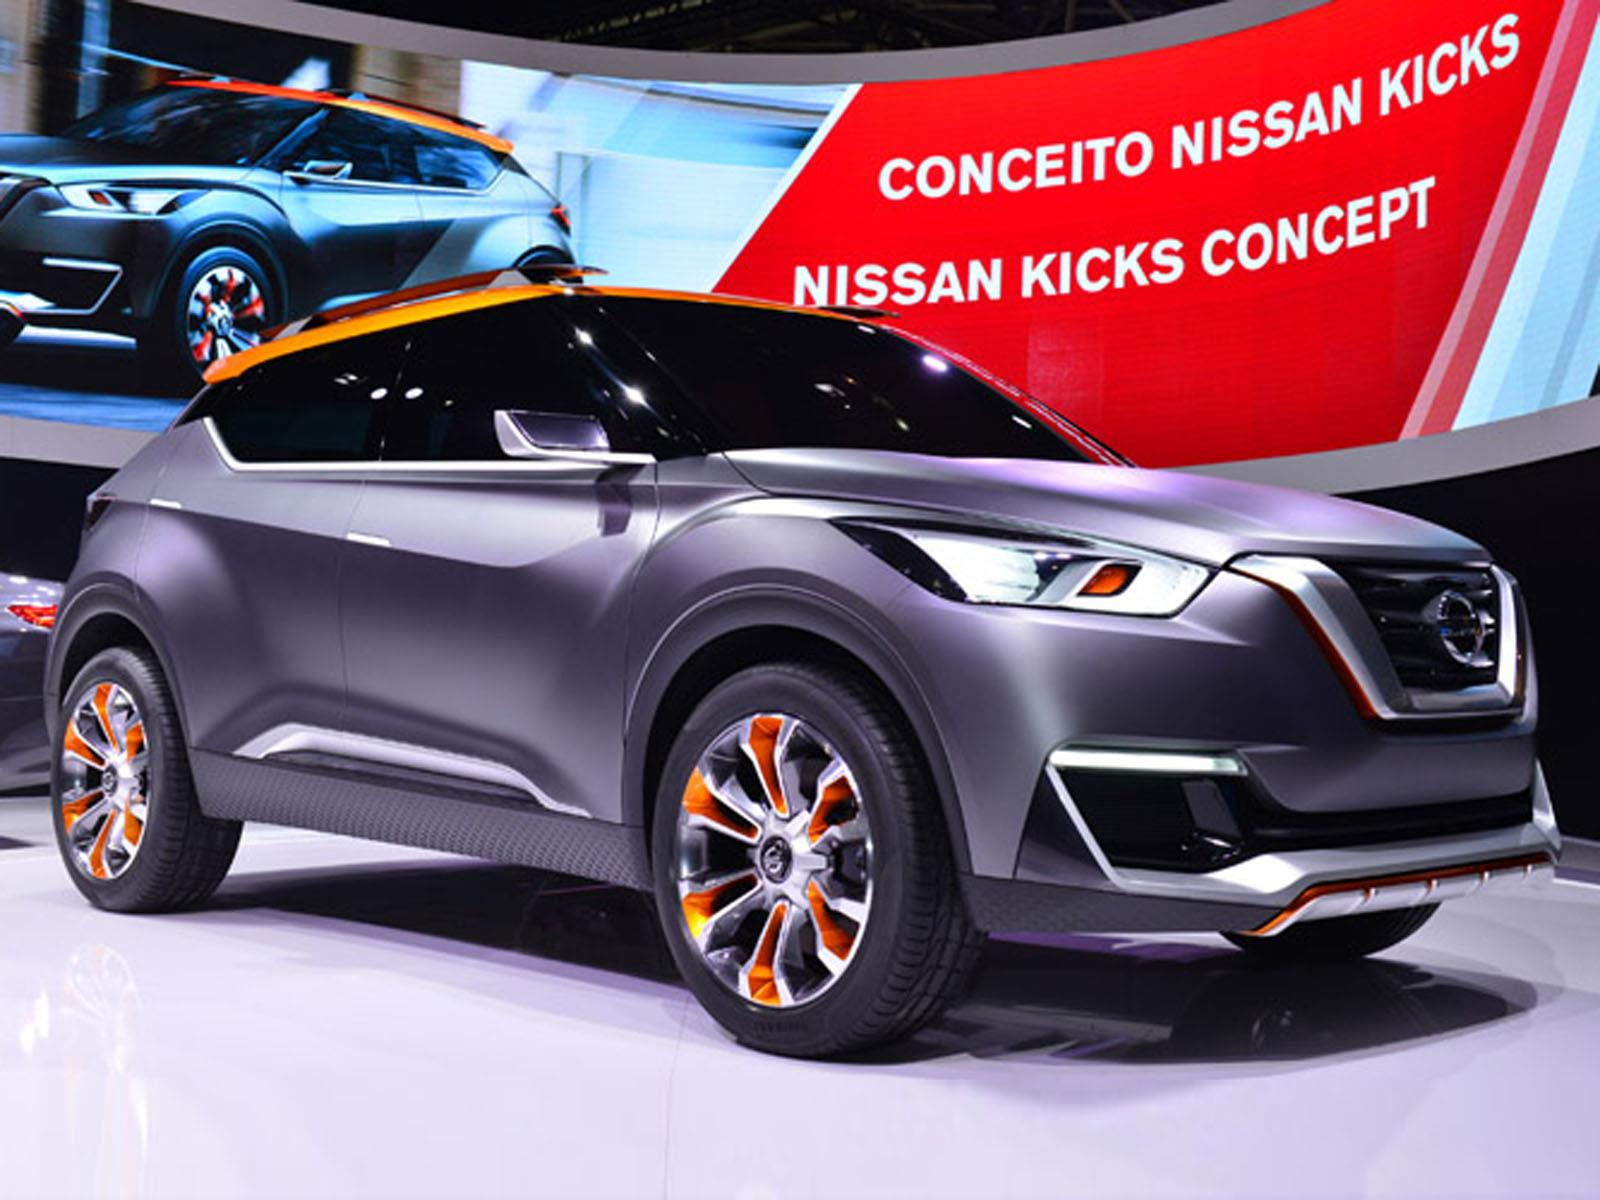 nissan kicks concept - india car news